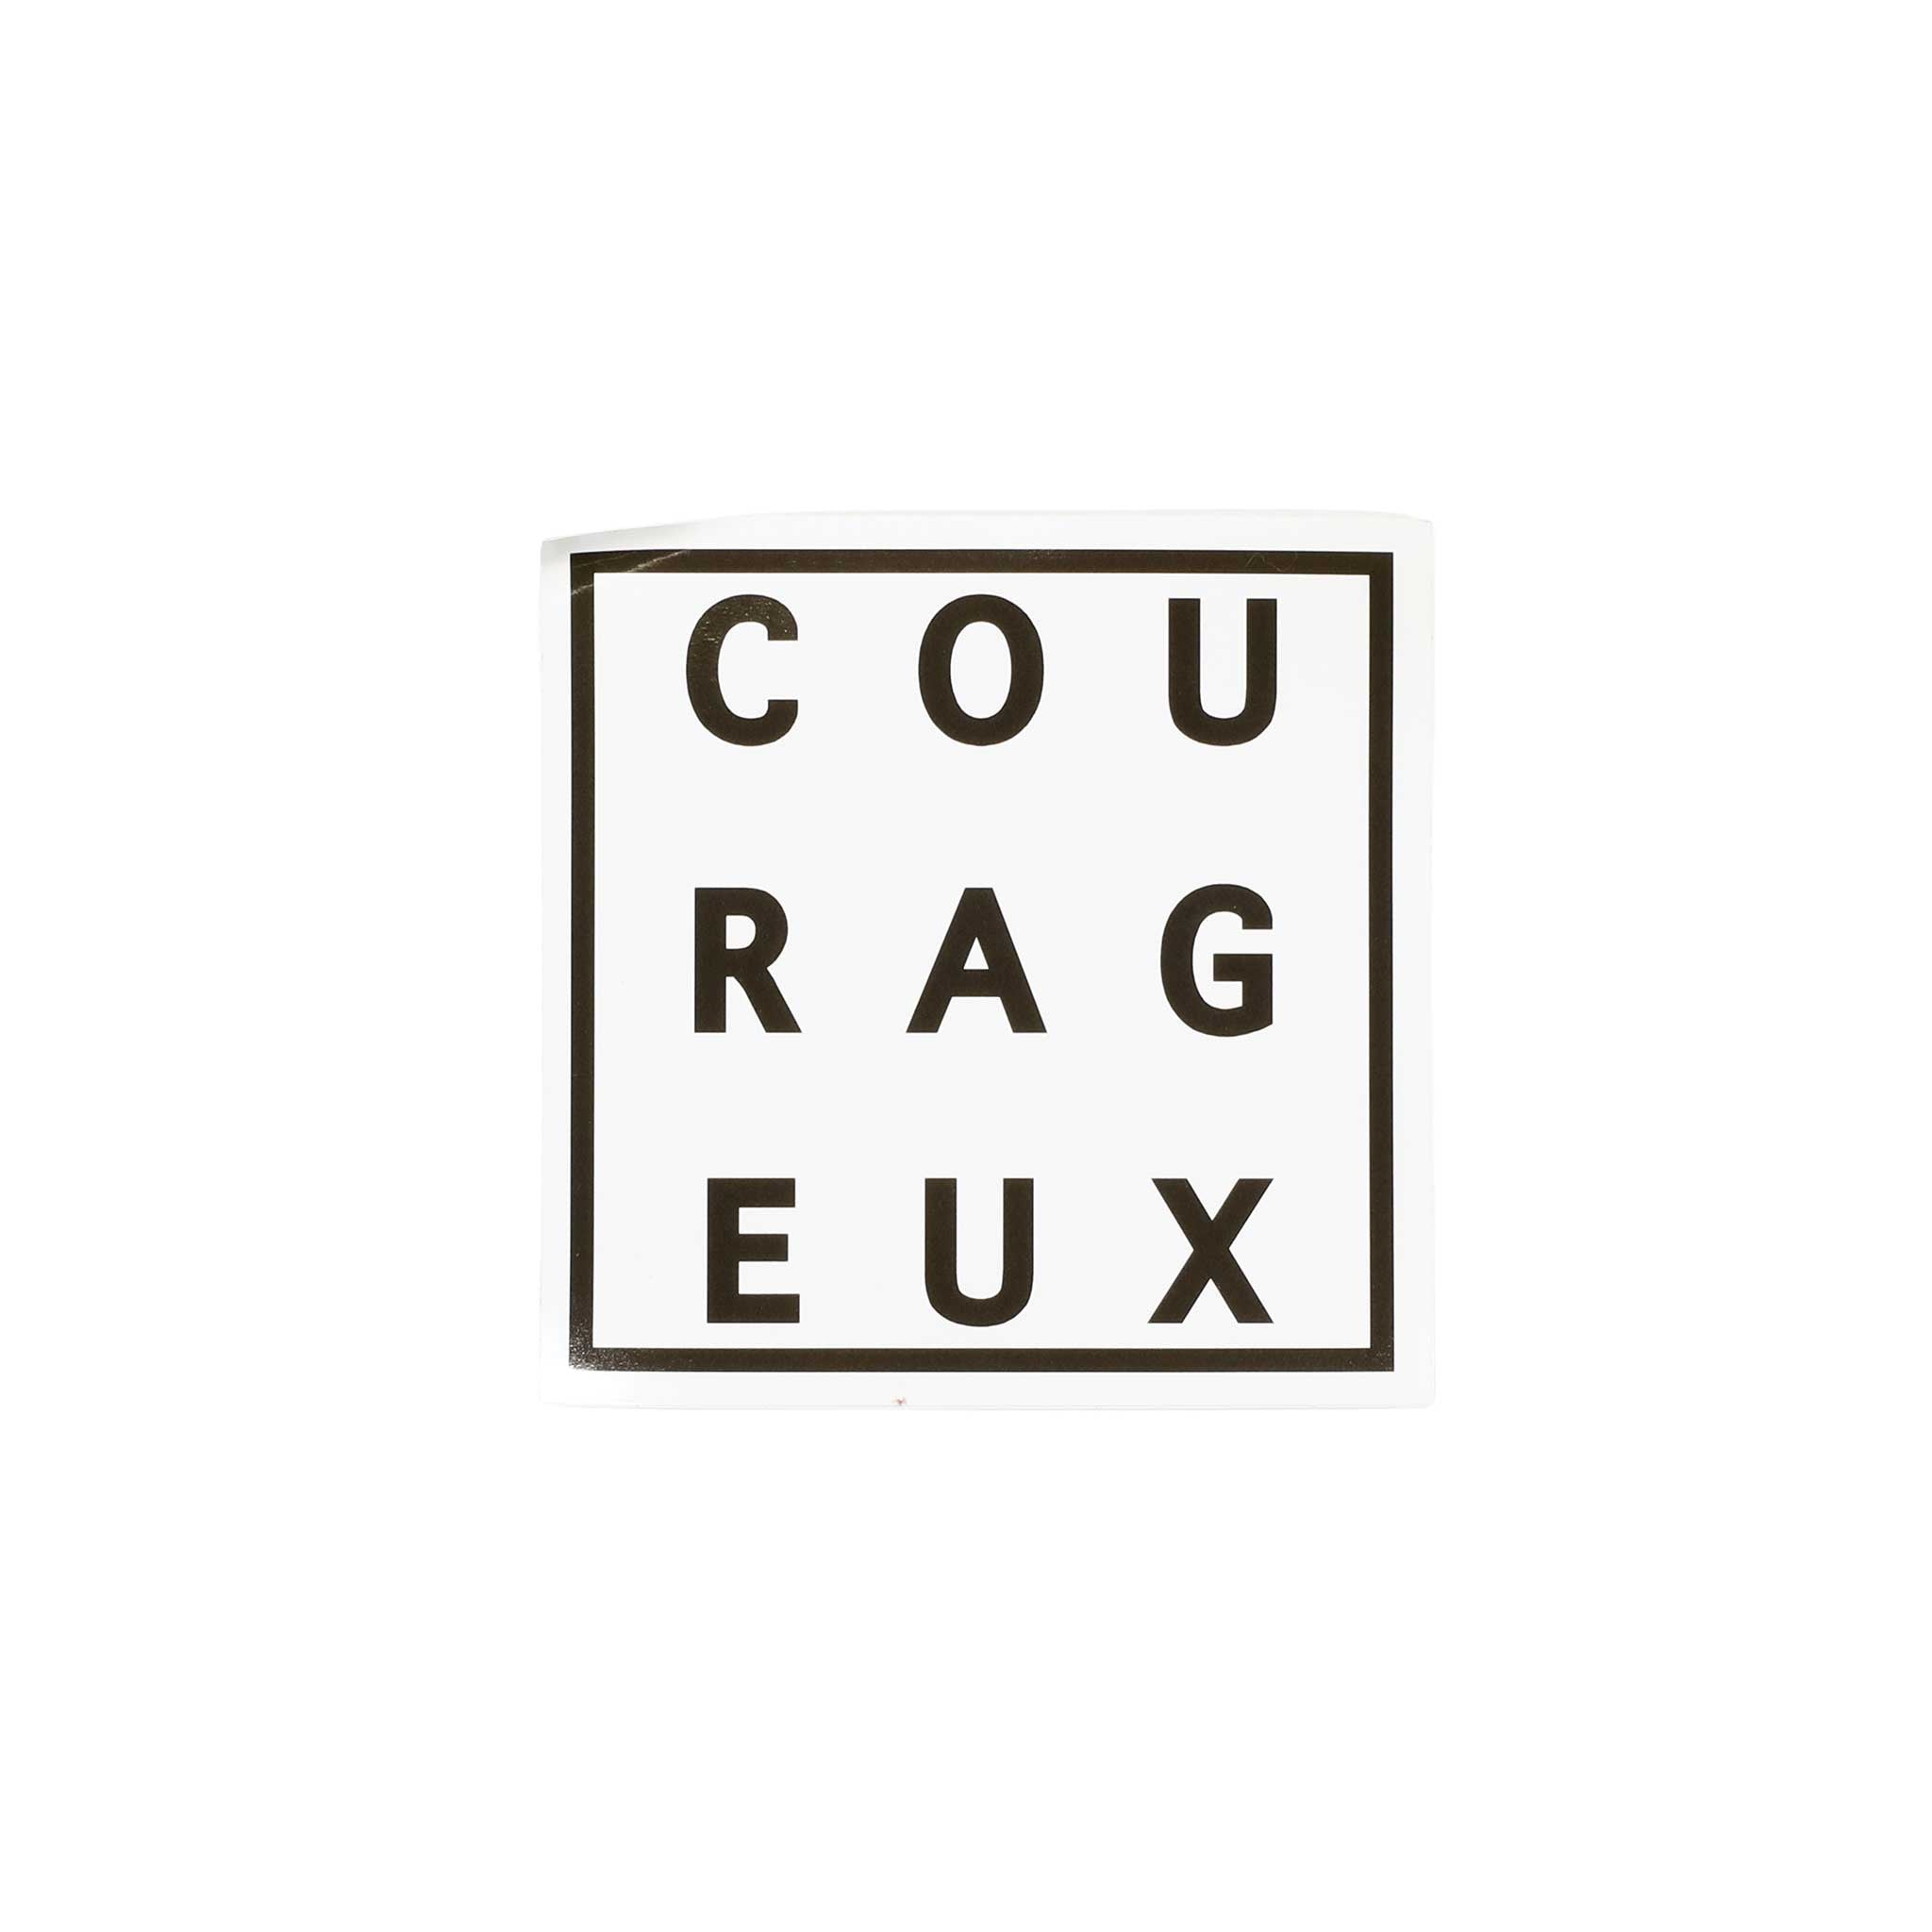 COURAGEUX Sticker